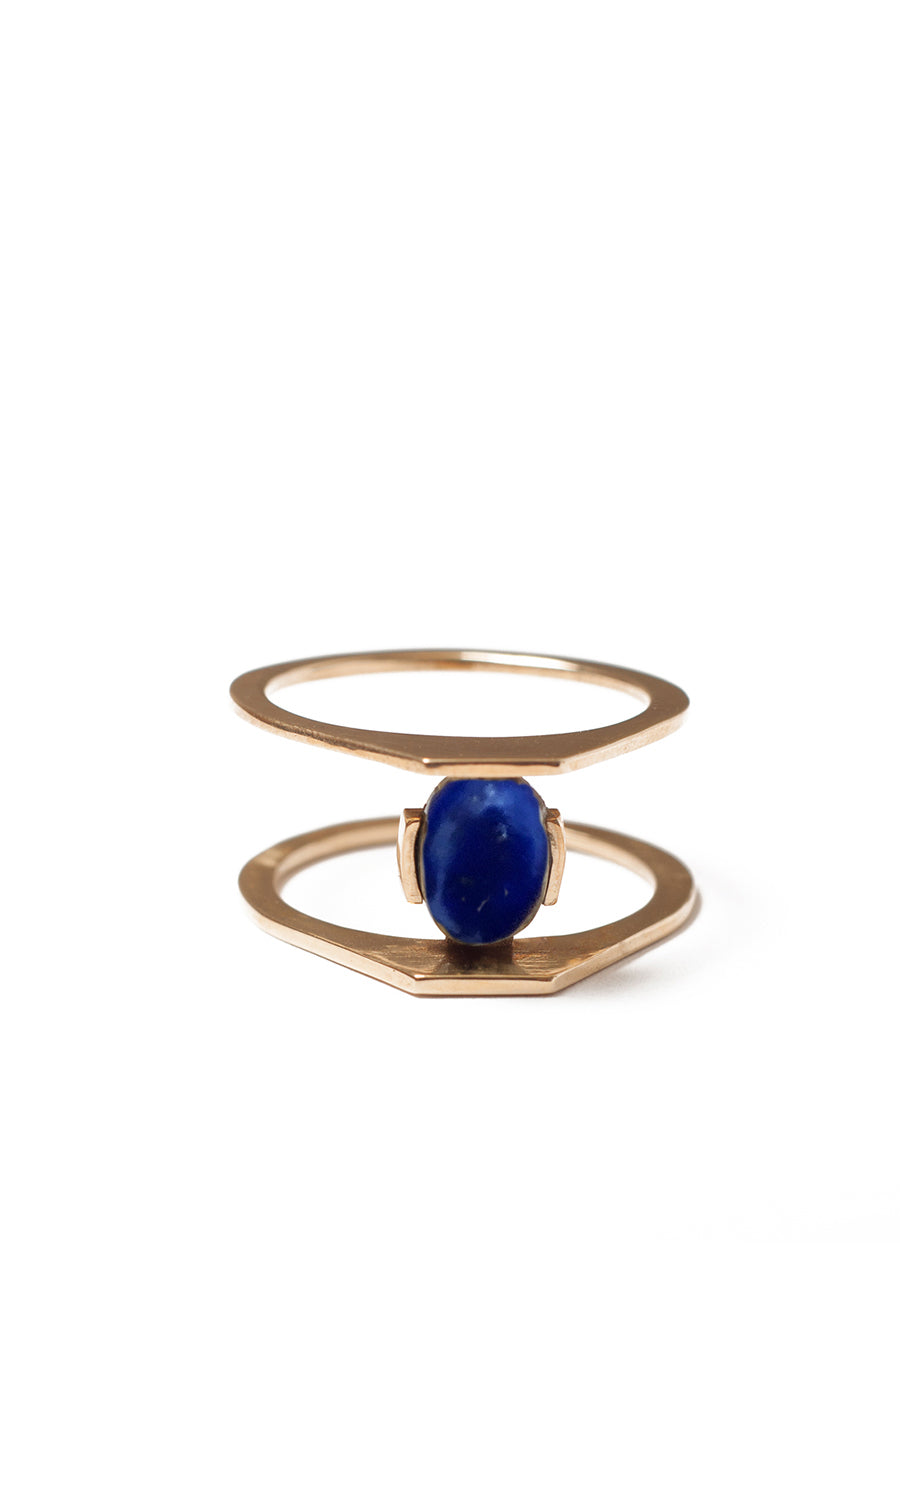 Zaun ring with Lapis